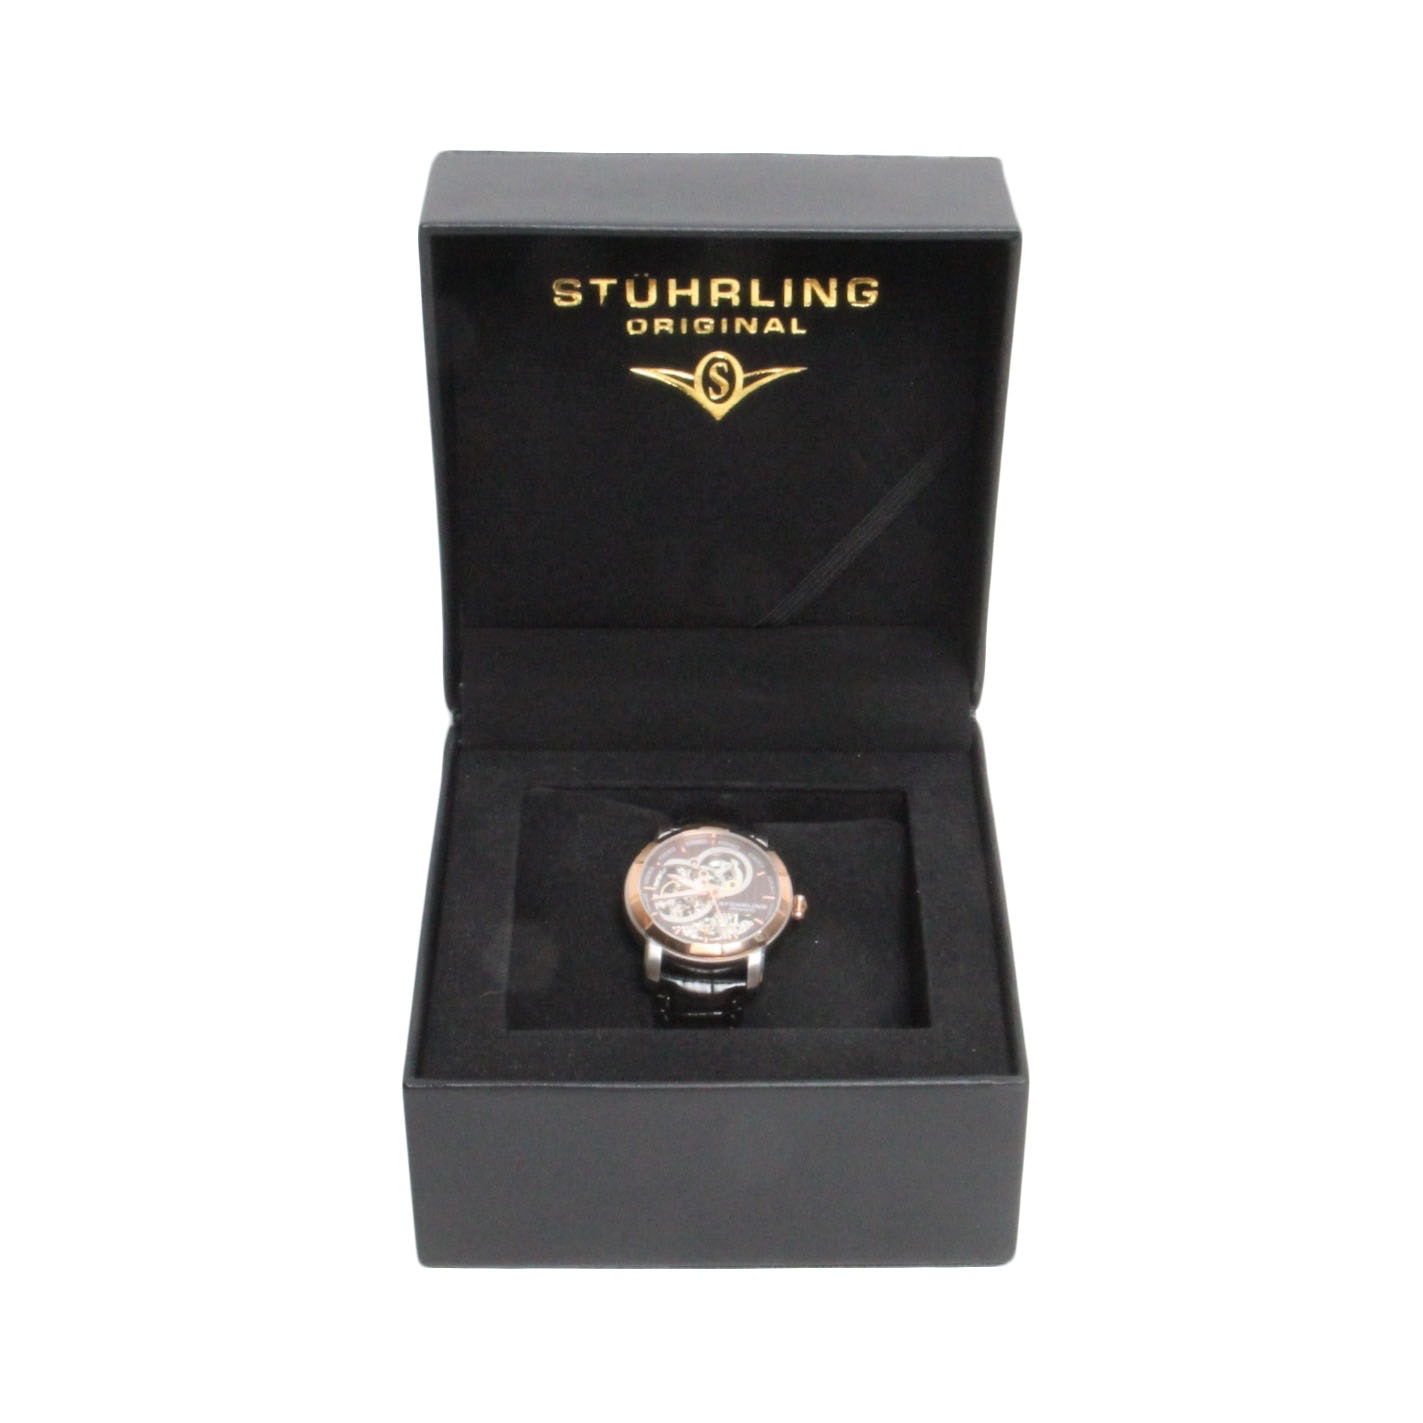 Stuhrling Stainless Steel and Genuine Leather Wristwatch